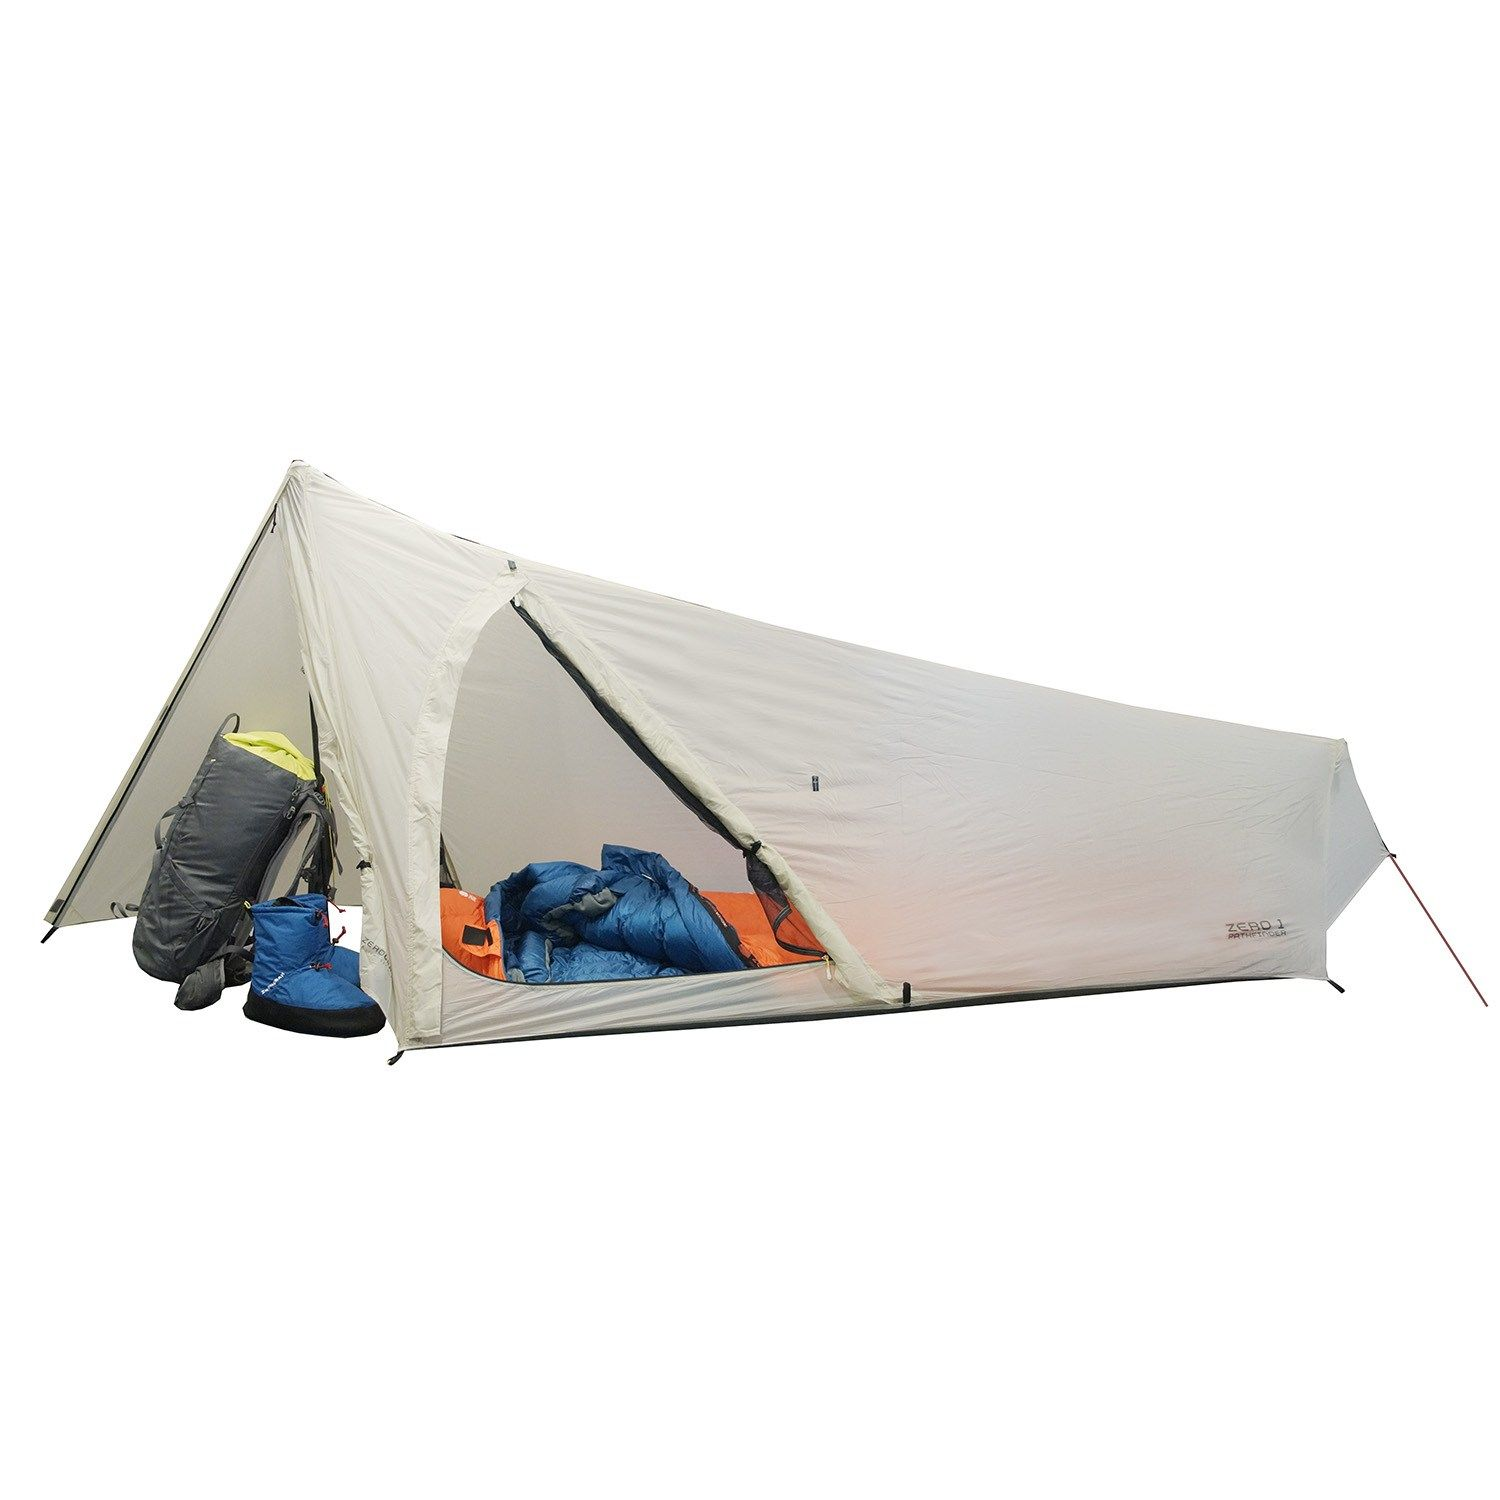 Cover Zerogram ZERO1 Pathfinder Tent u2022 Ultralight single-wall design relies on 1 pair  sc 1 st  Pinterest & Cover: Zerogram ZERO1 Pathfinder Tent u2022 Ultralight single-wall ...